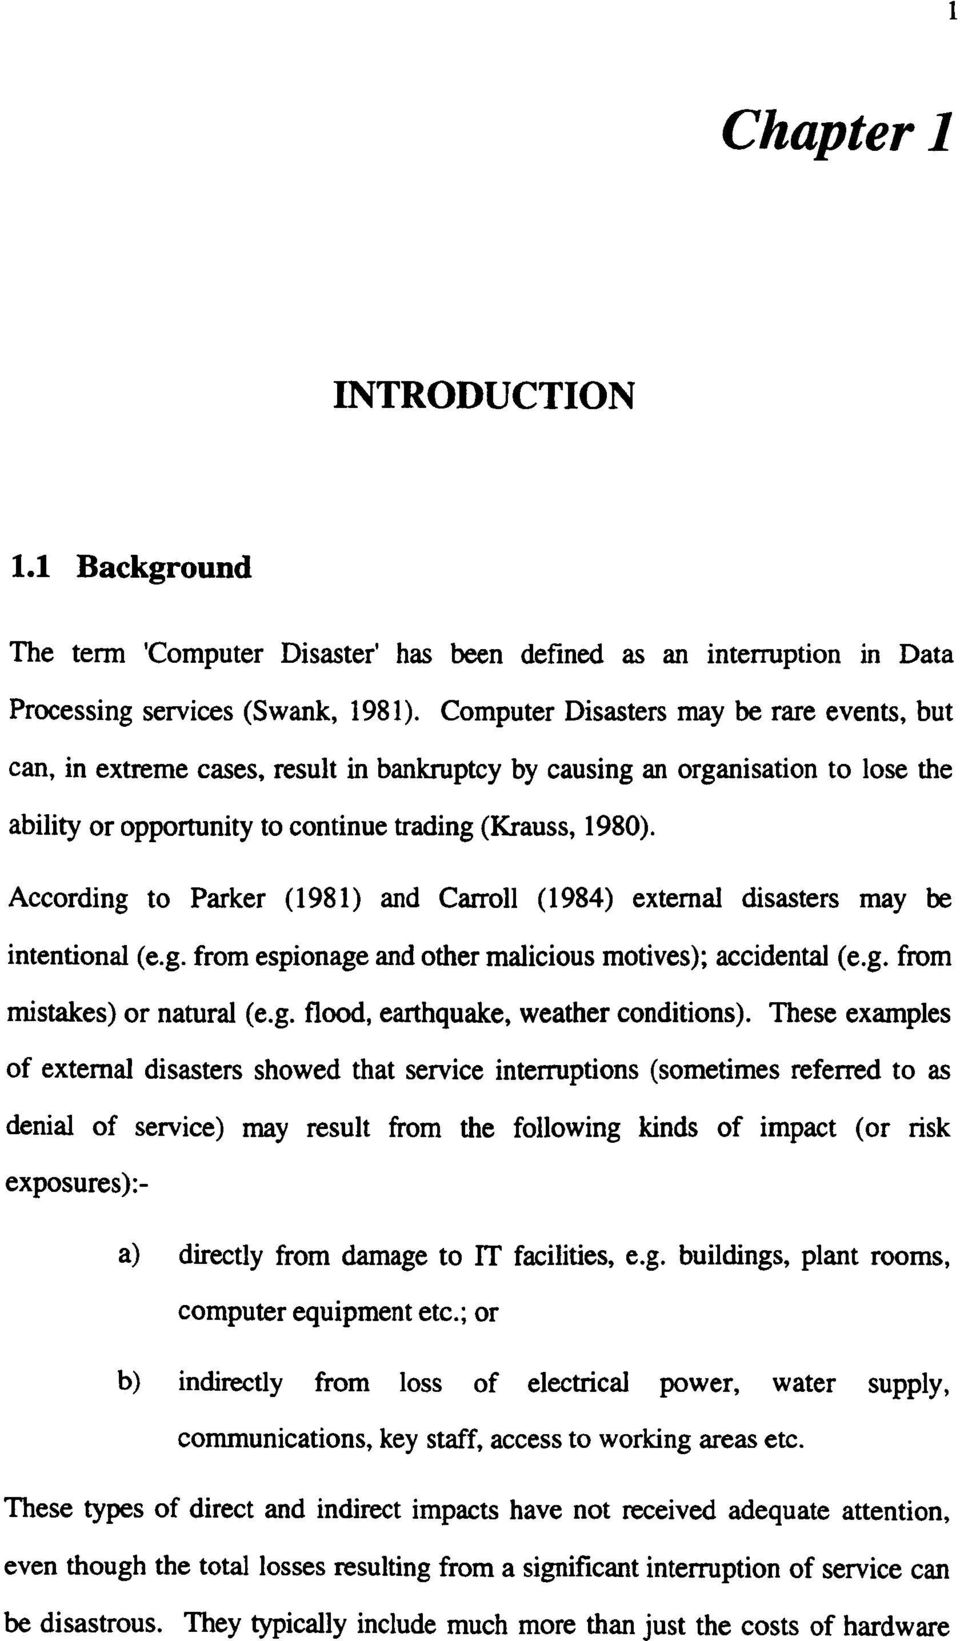 According to Parker (1981) and Carroll (1984) external disasters may be intentional (e.g. from espionage and other malicious motives); accidental (e.g. from mistakes) or natural (e.g. flood, earthquake, weather conditions).